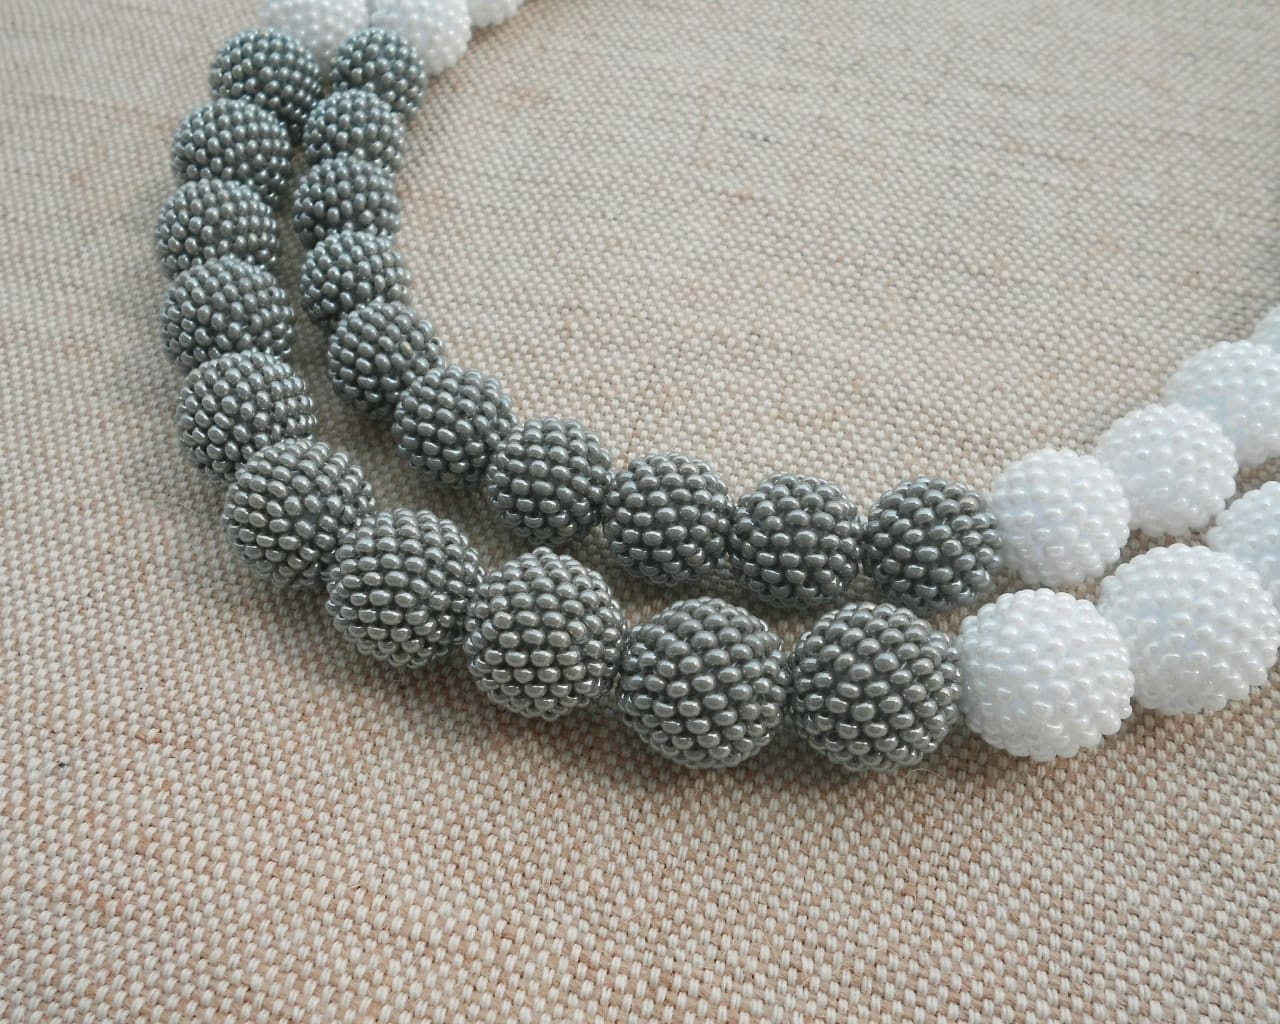 Beaded Necklaces In Smog - Melnichenko1